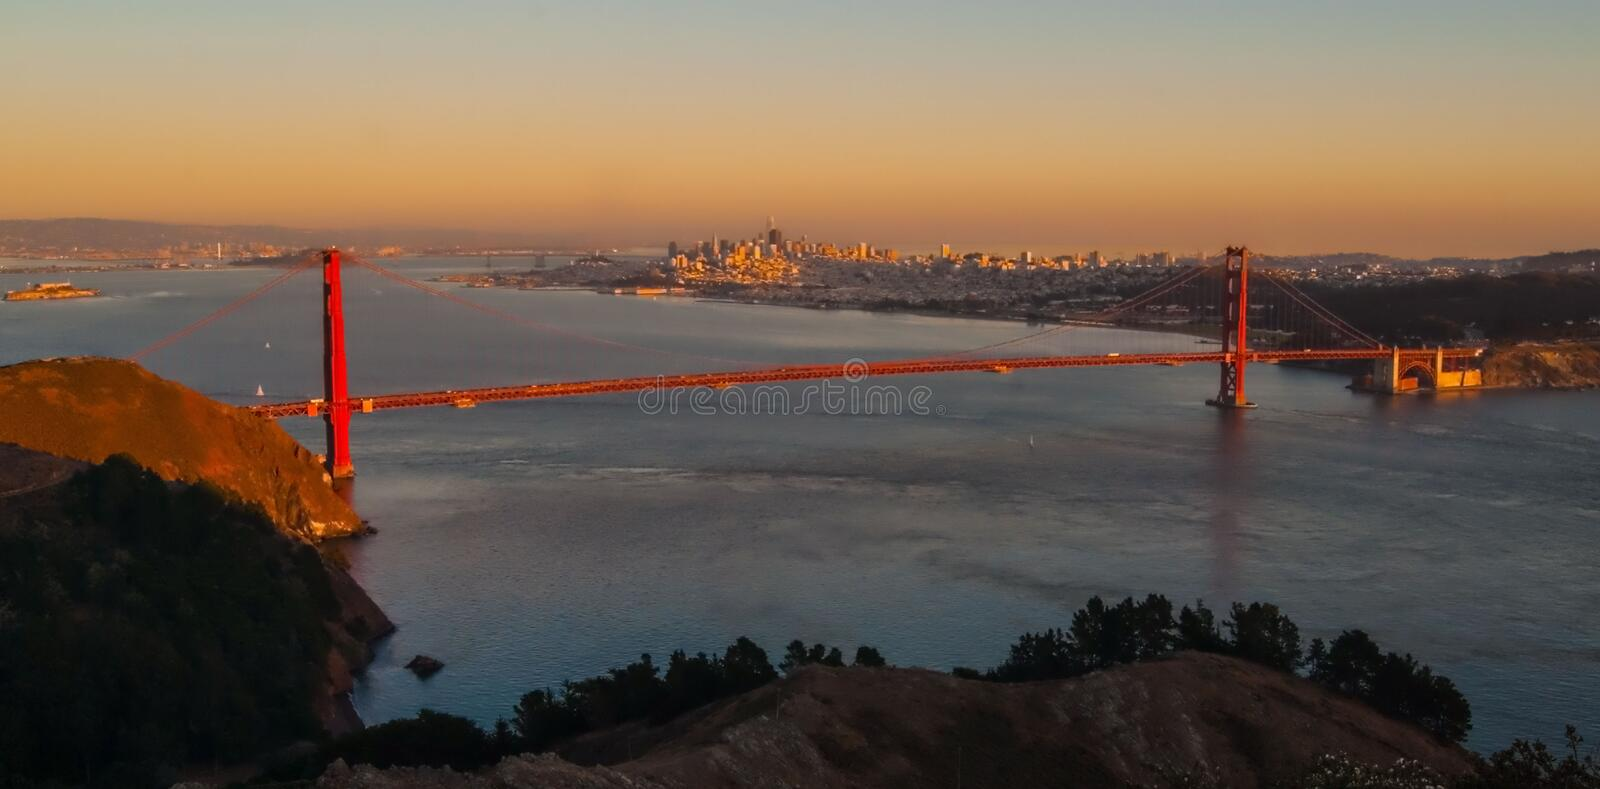 Golden Gate Bridge At Sunset. A scenic view of the Golden Gate Bridge in San Francisco  at sunset stock photography